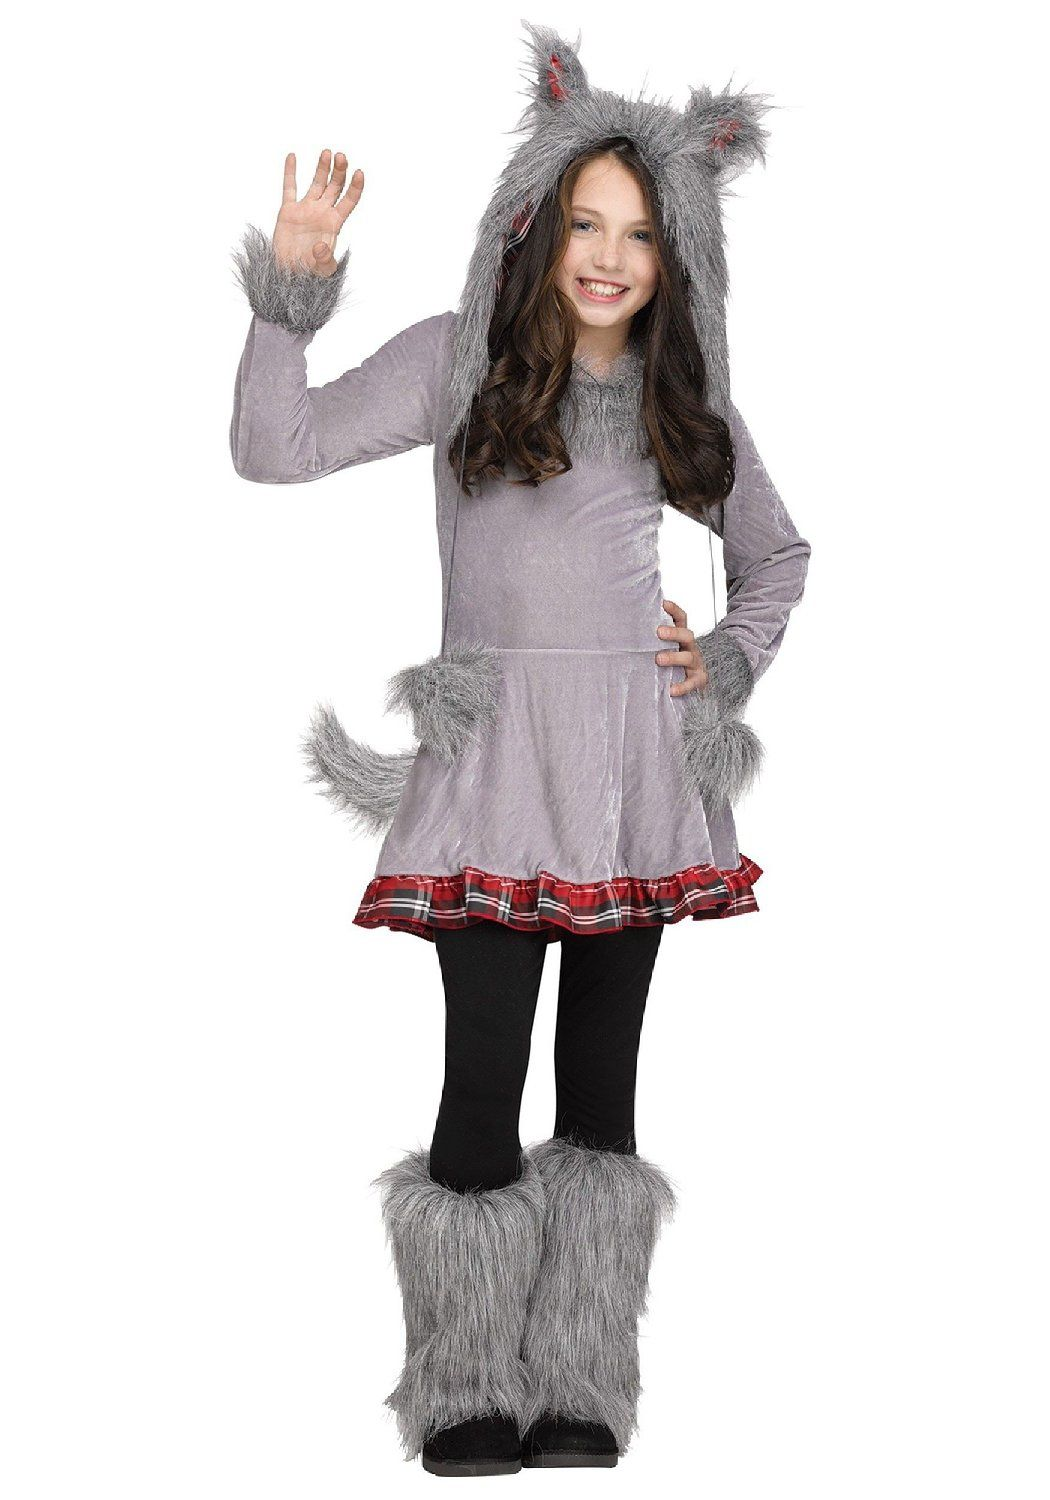 amazoncom fun world girls girls wolf cub costume clothing - Wolf Costume Halloween